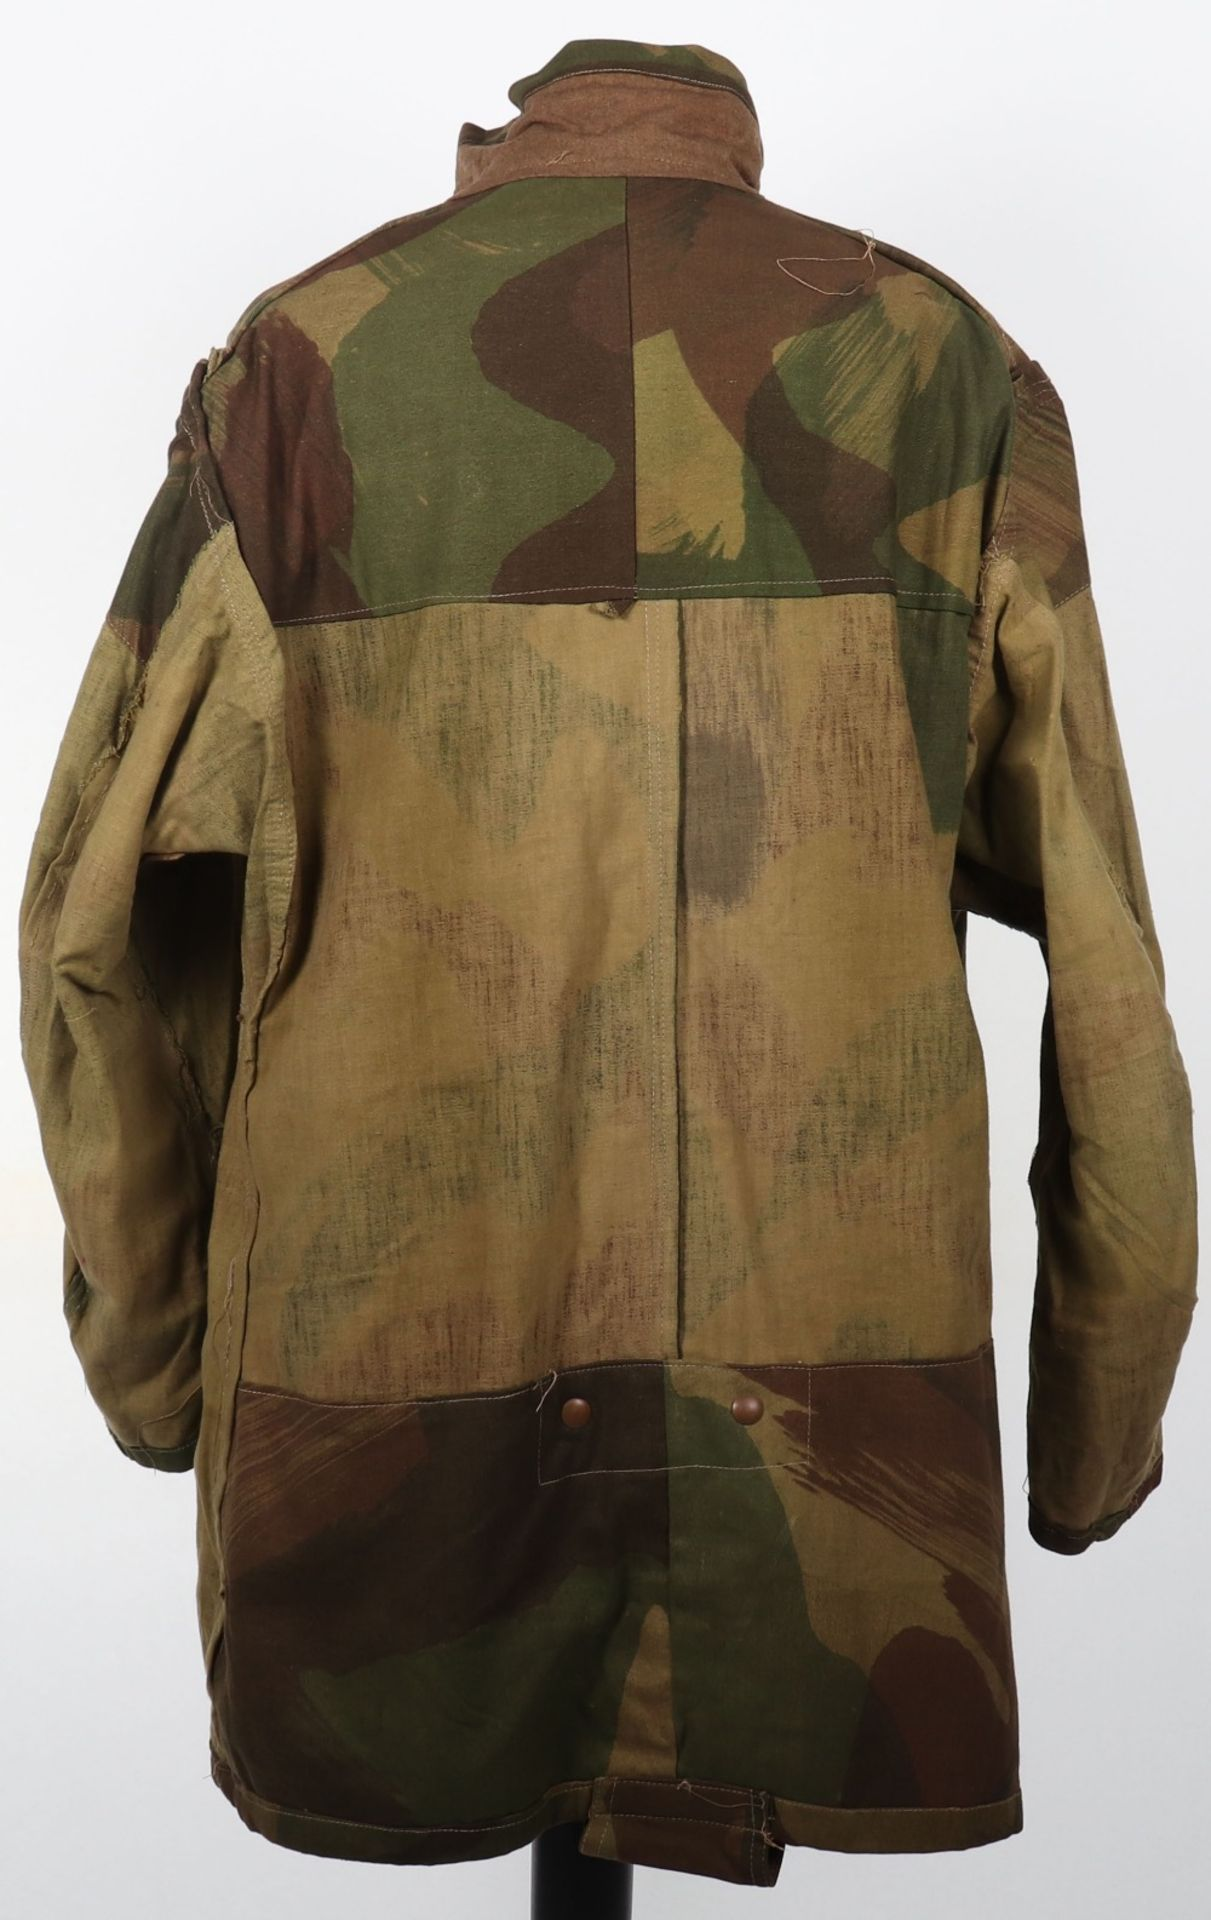 Mint Condition Large Size Airborne Forces Denison Smock - Image 17 of 17